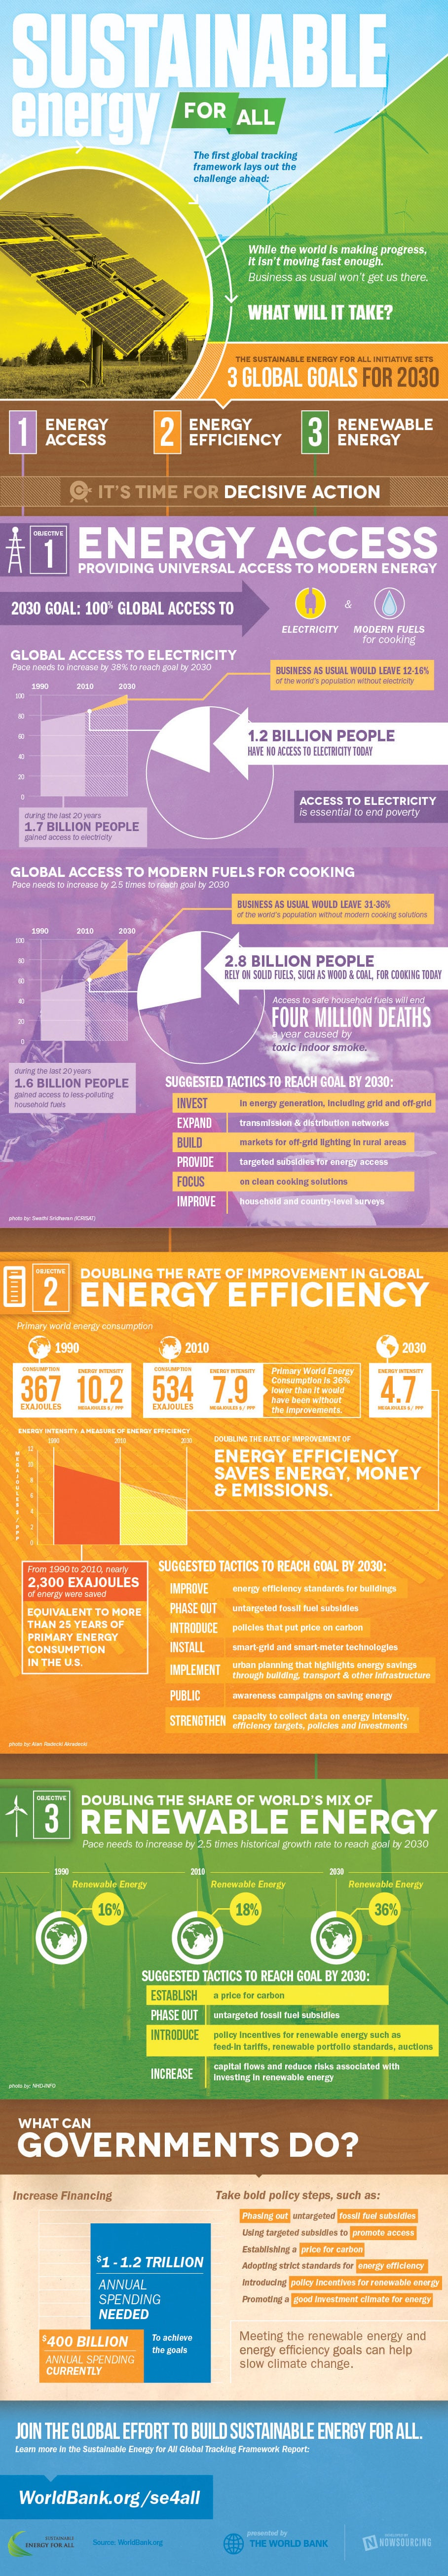 Imagine A World With Sustainable Energy & Access For All [Infographic]